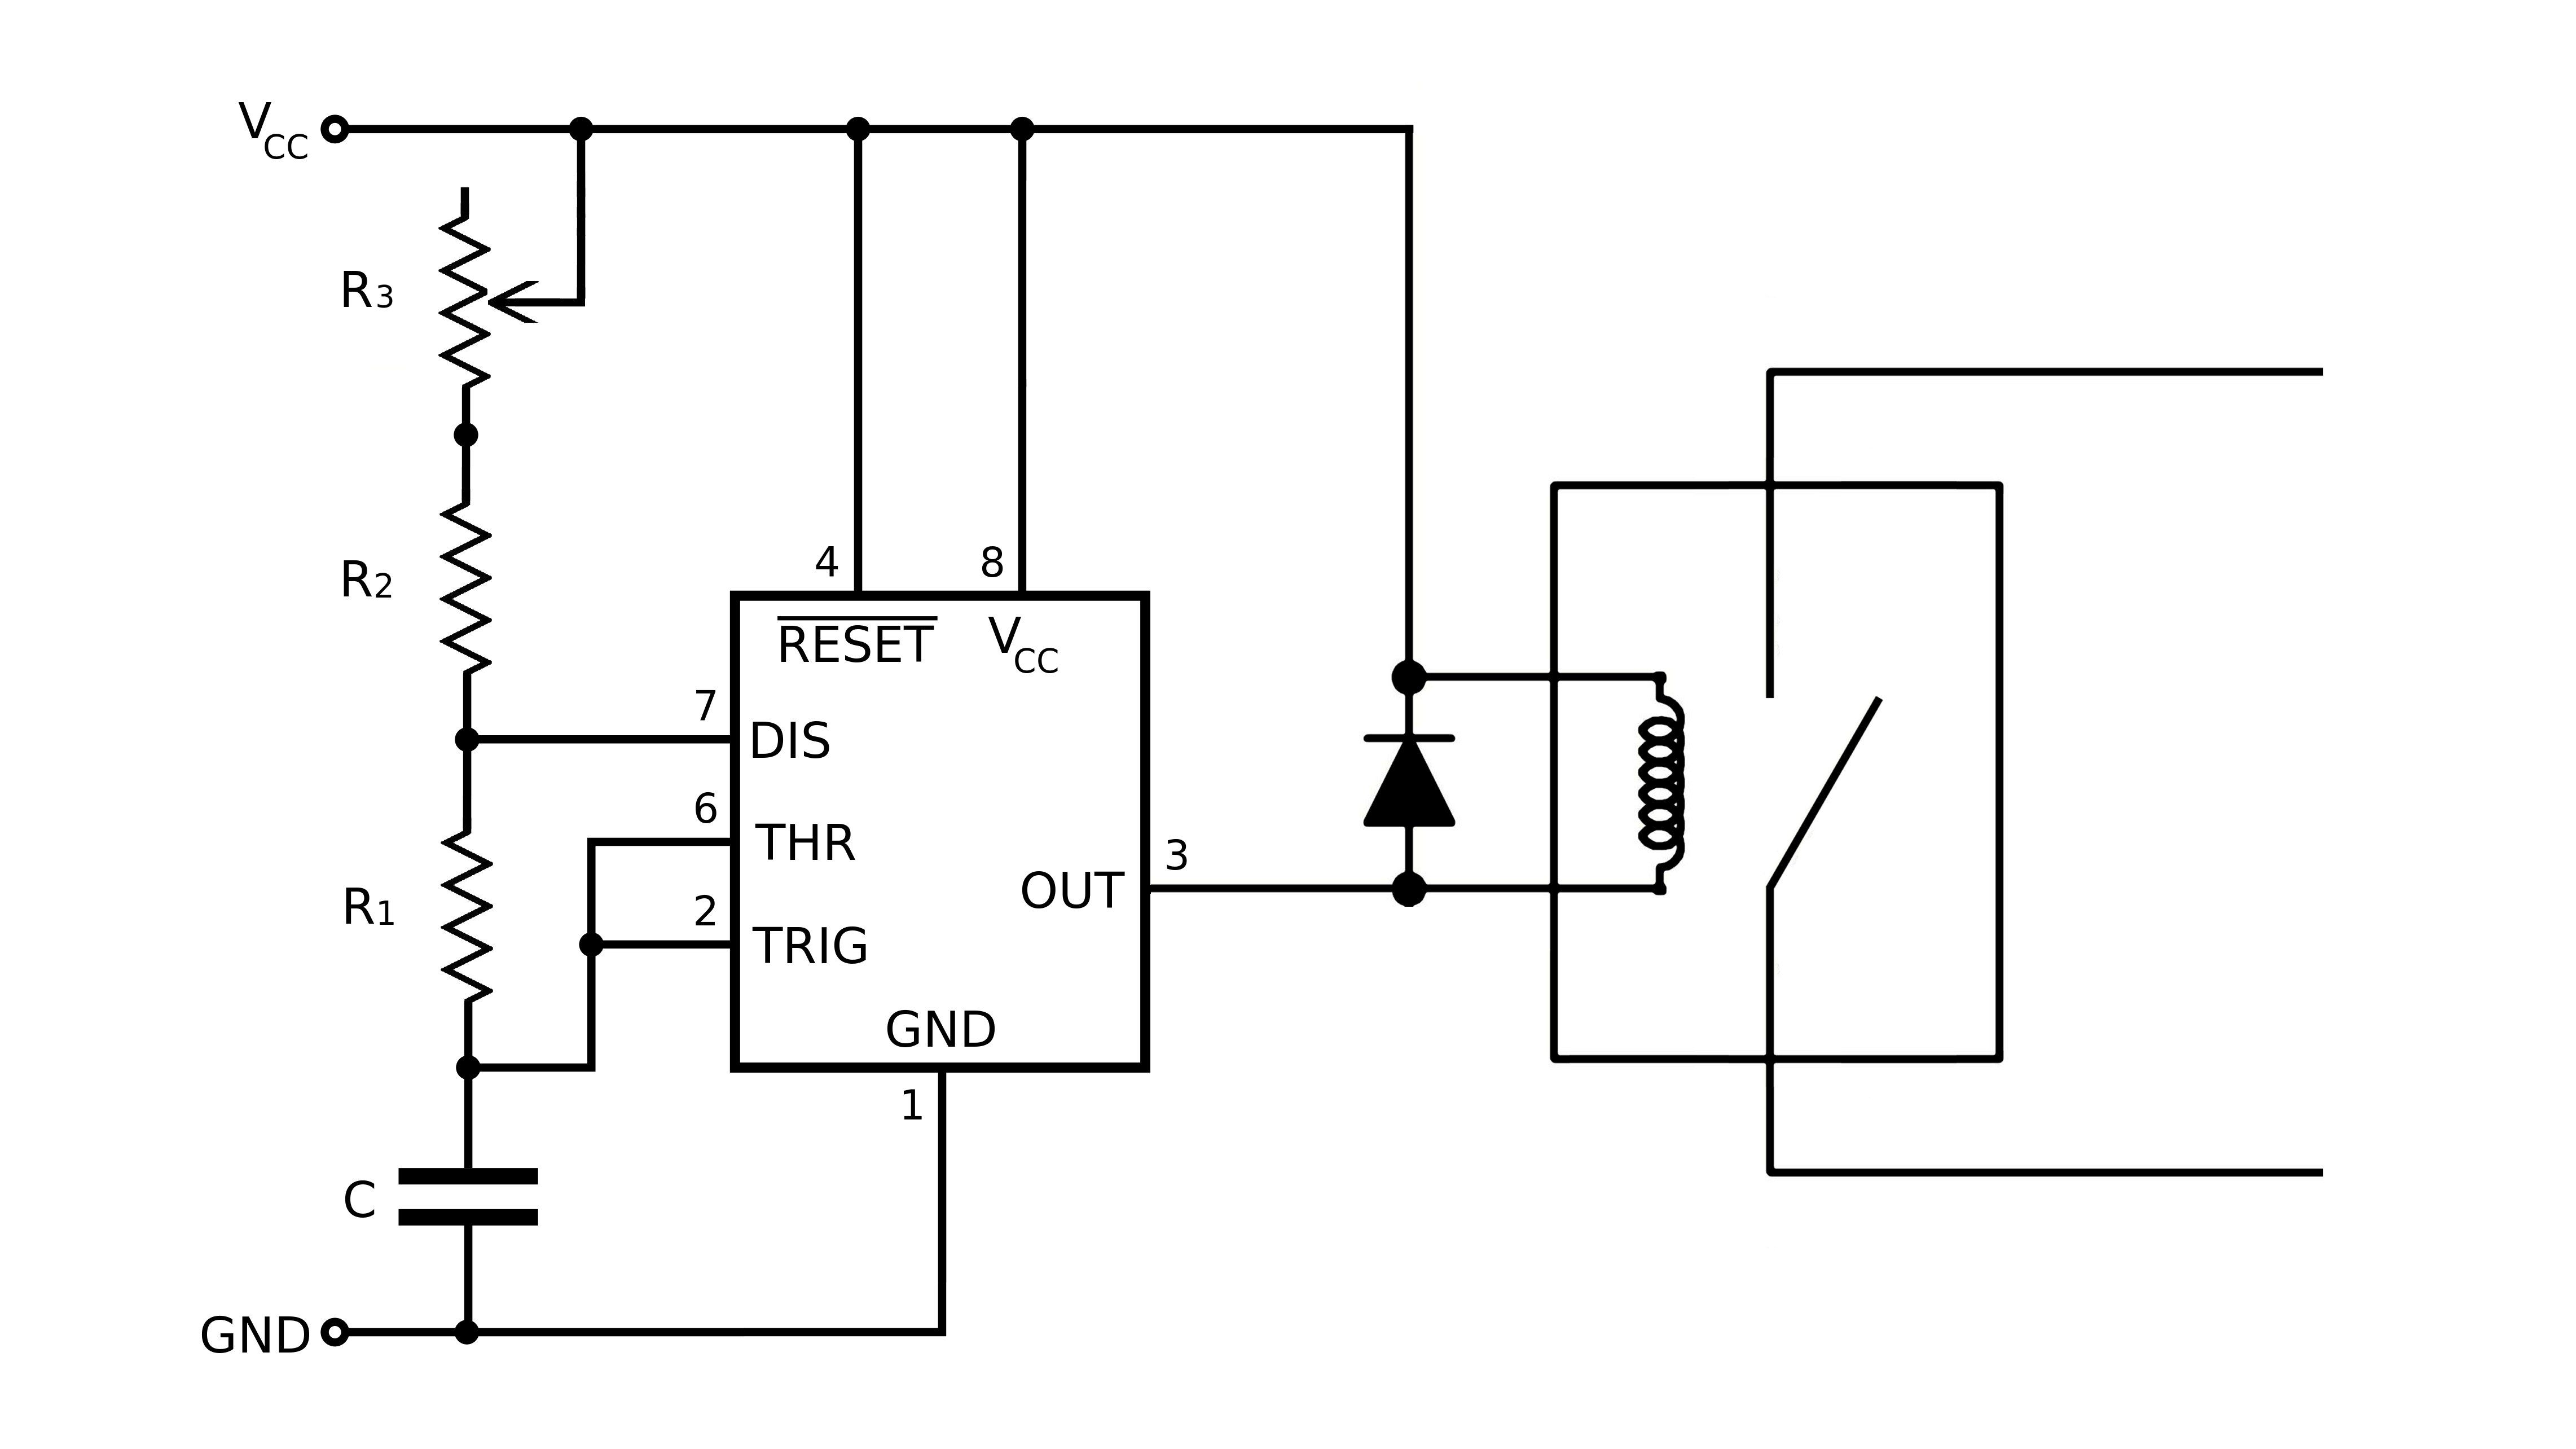 Adjustable Control Circuit For Heating Elements Make In 2021 Circuit Control Temperature Control